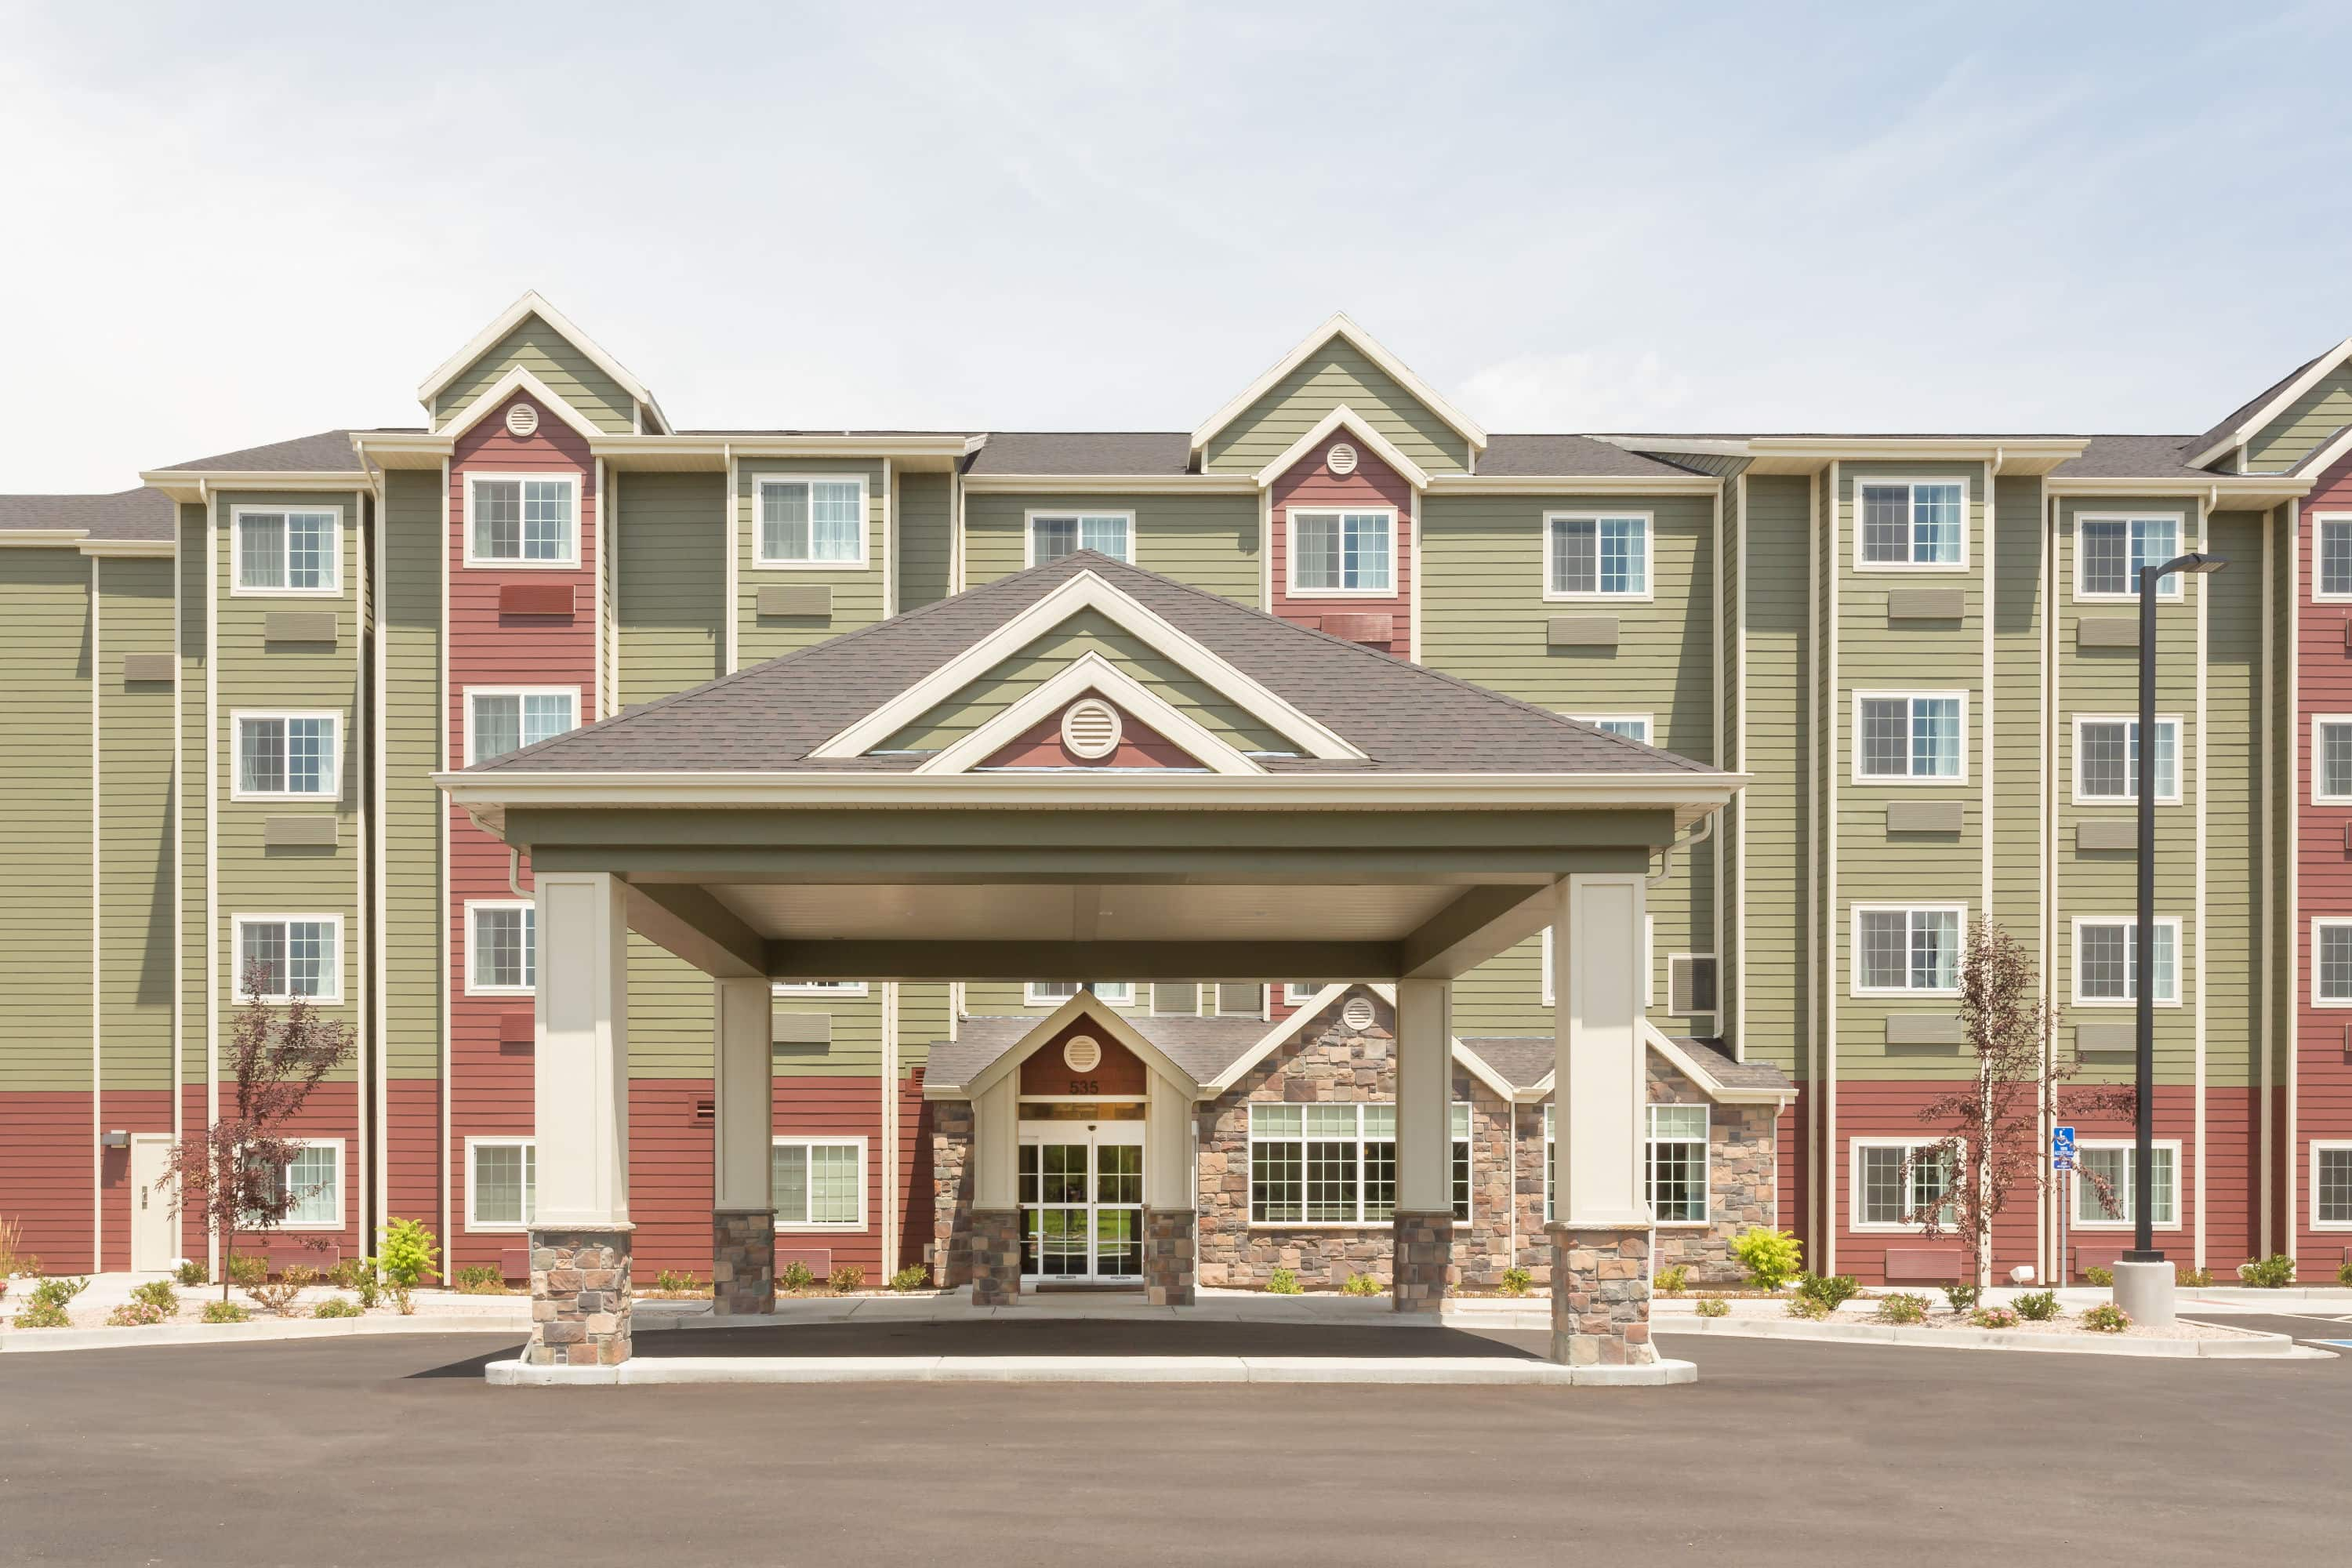 Microtel Inn Suites By Wyndham Springville Provo Ut Hotels